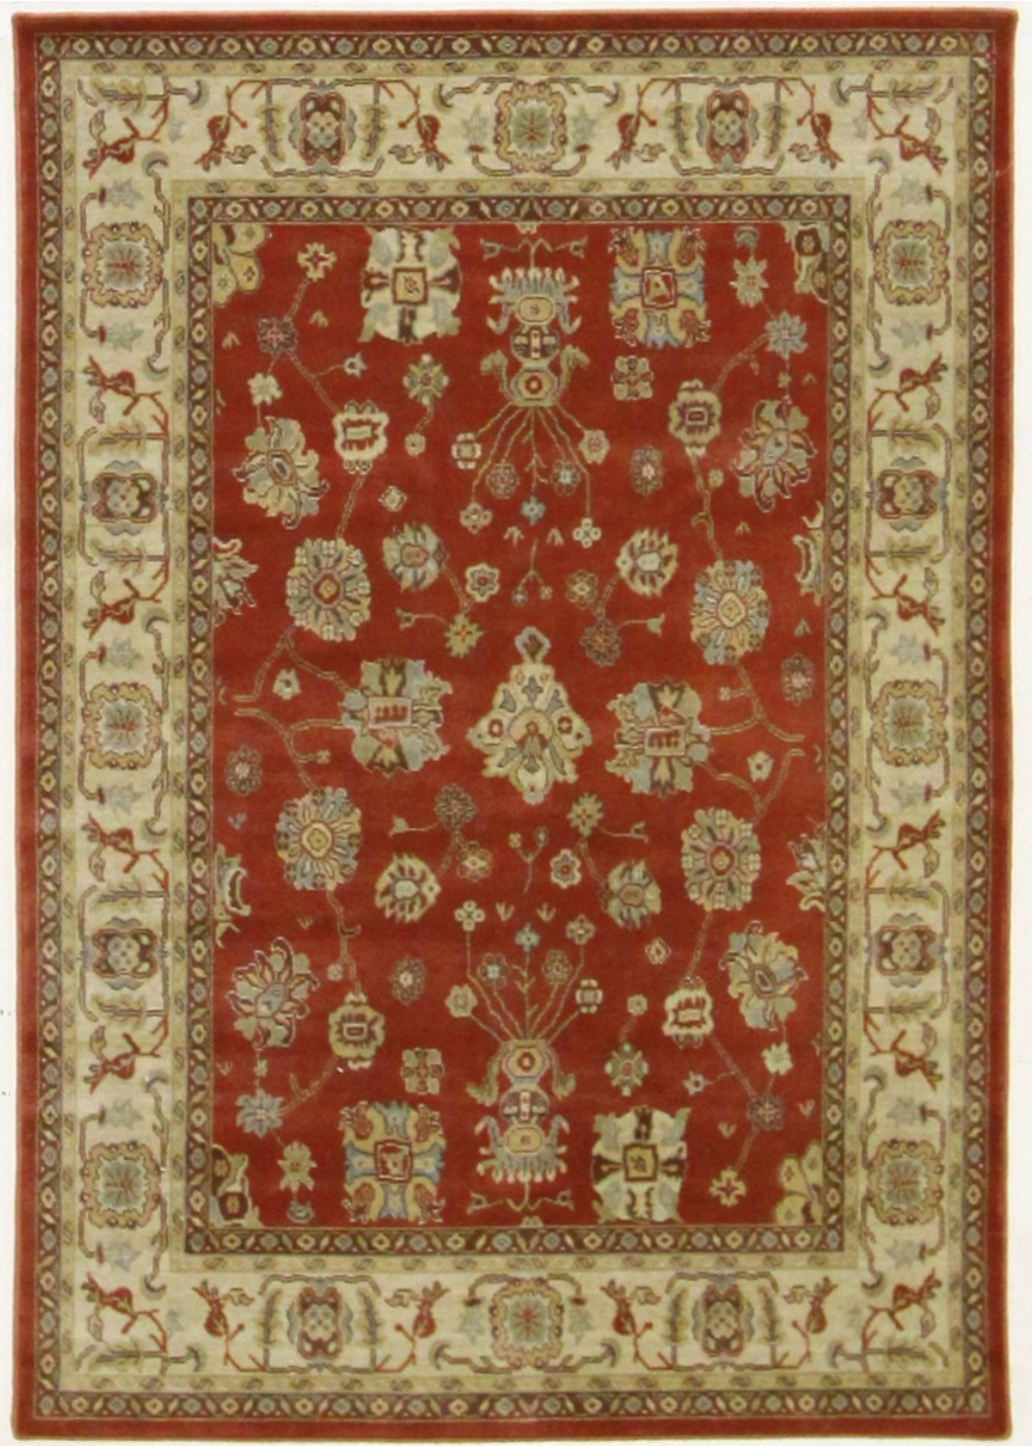 Buy Traditional Rugs For Sale From World Of Rugs To Update ...